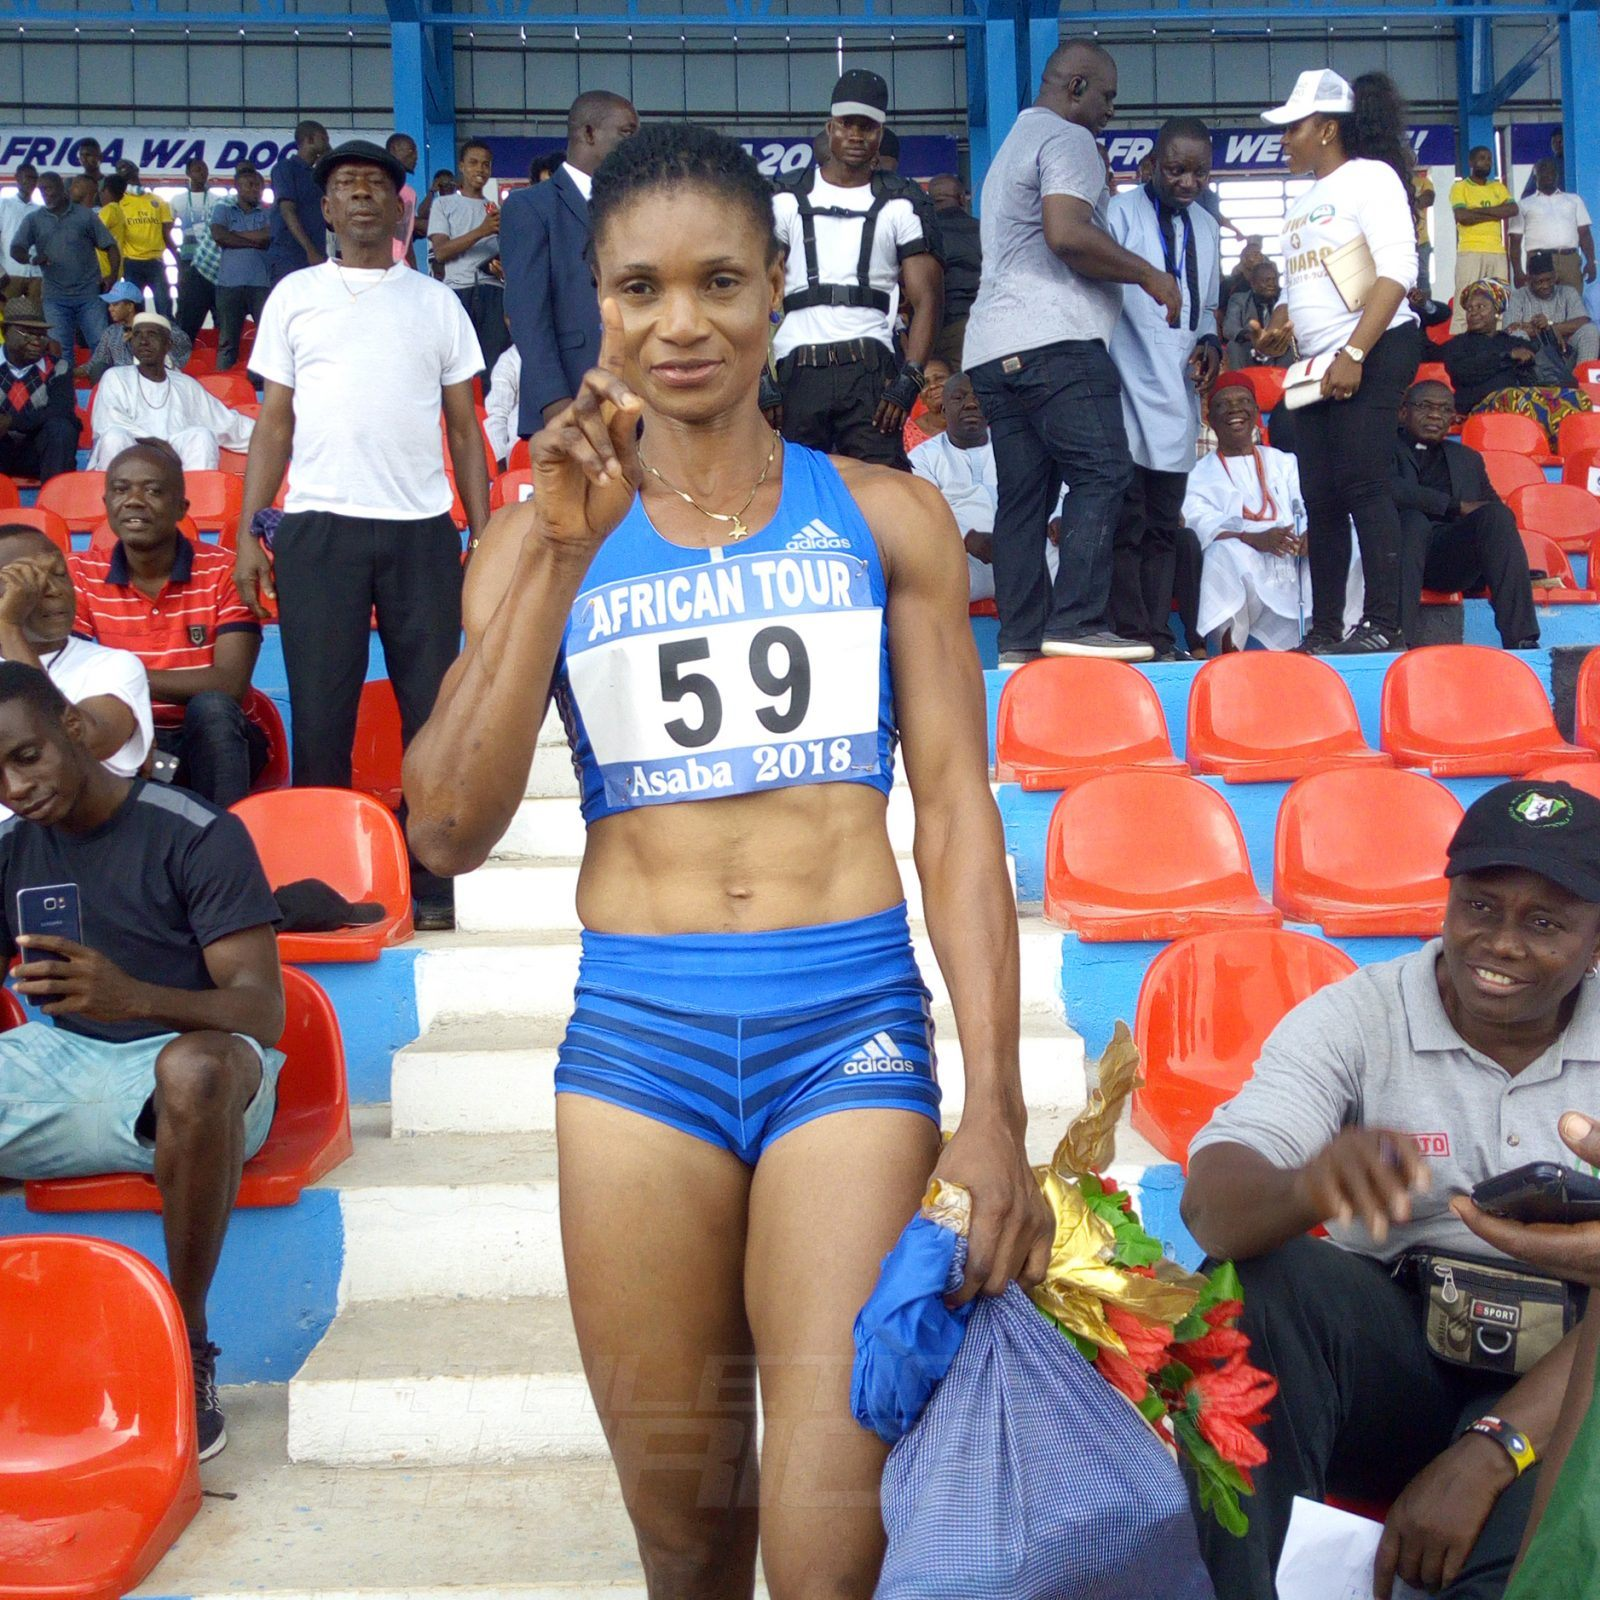 Patience Okon-George won the women's 400m 51.49 secs. Abike Egbeniyi was 2nd in 52.48 and Rita Ossai 3rd in 54.95. / Photo credit: Naomi Peters for Athletics Africa